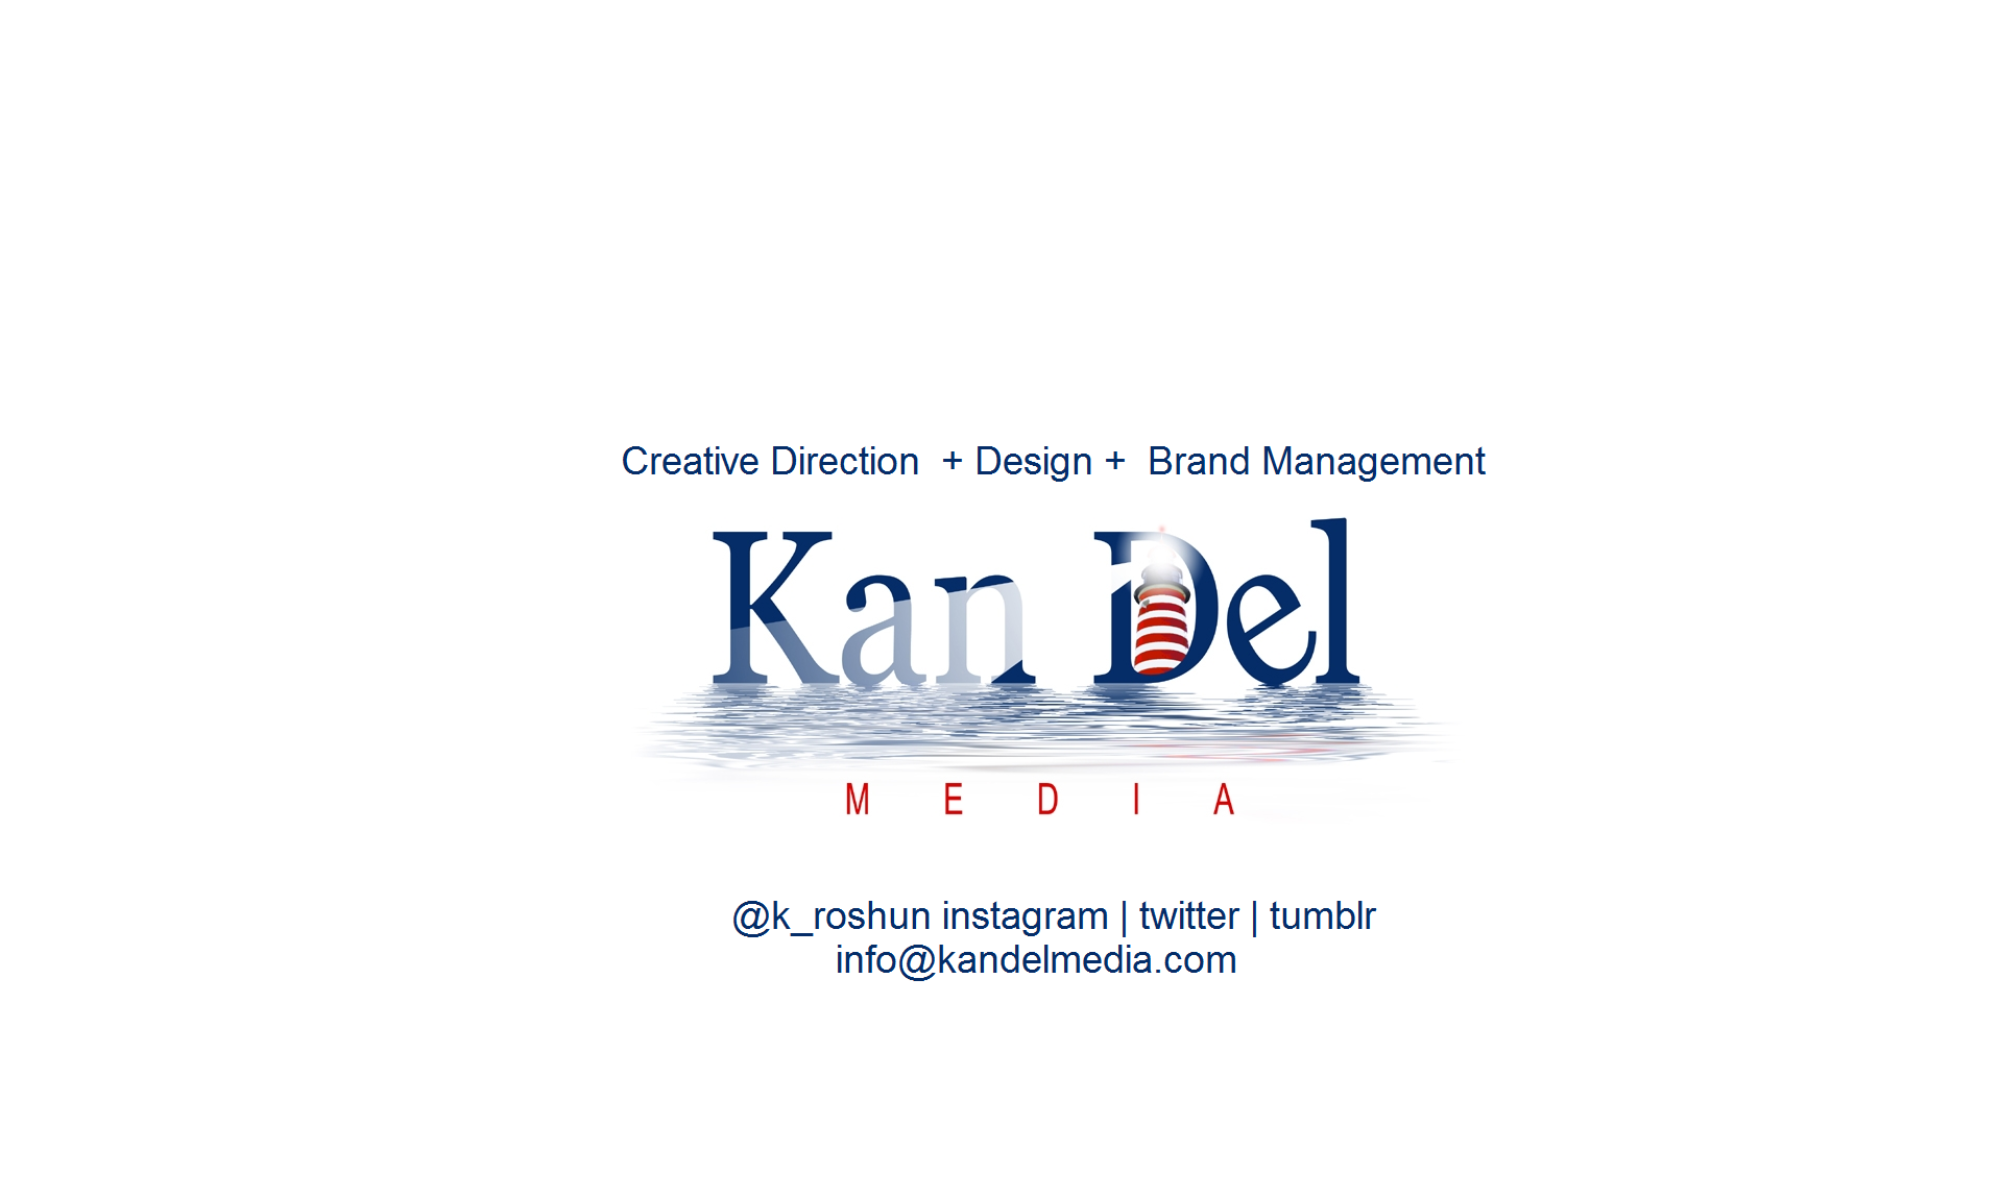 KanDel Media -creative direction, design, digital brand management